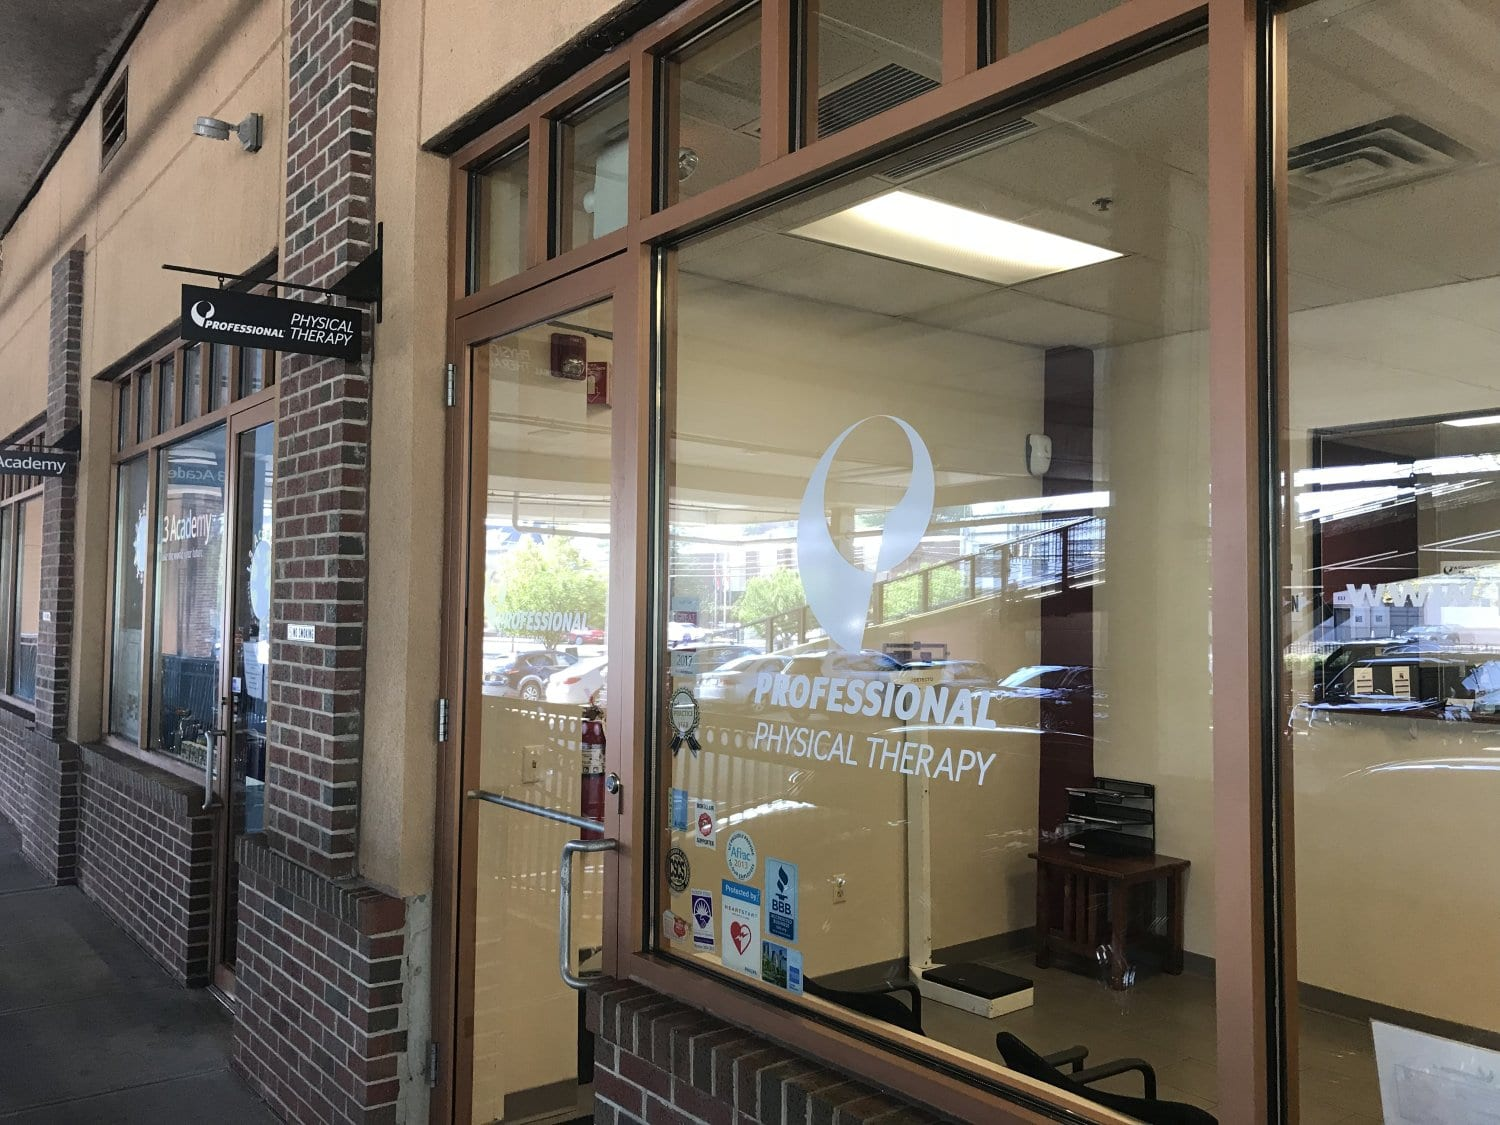 An image of the window with our logo at our physical therapy clinic in Montclair, New Jersey at Greenwood.